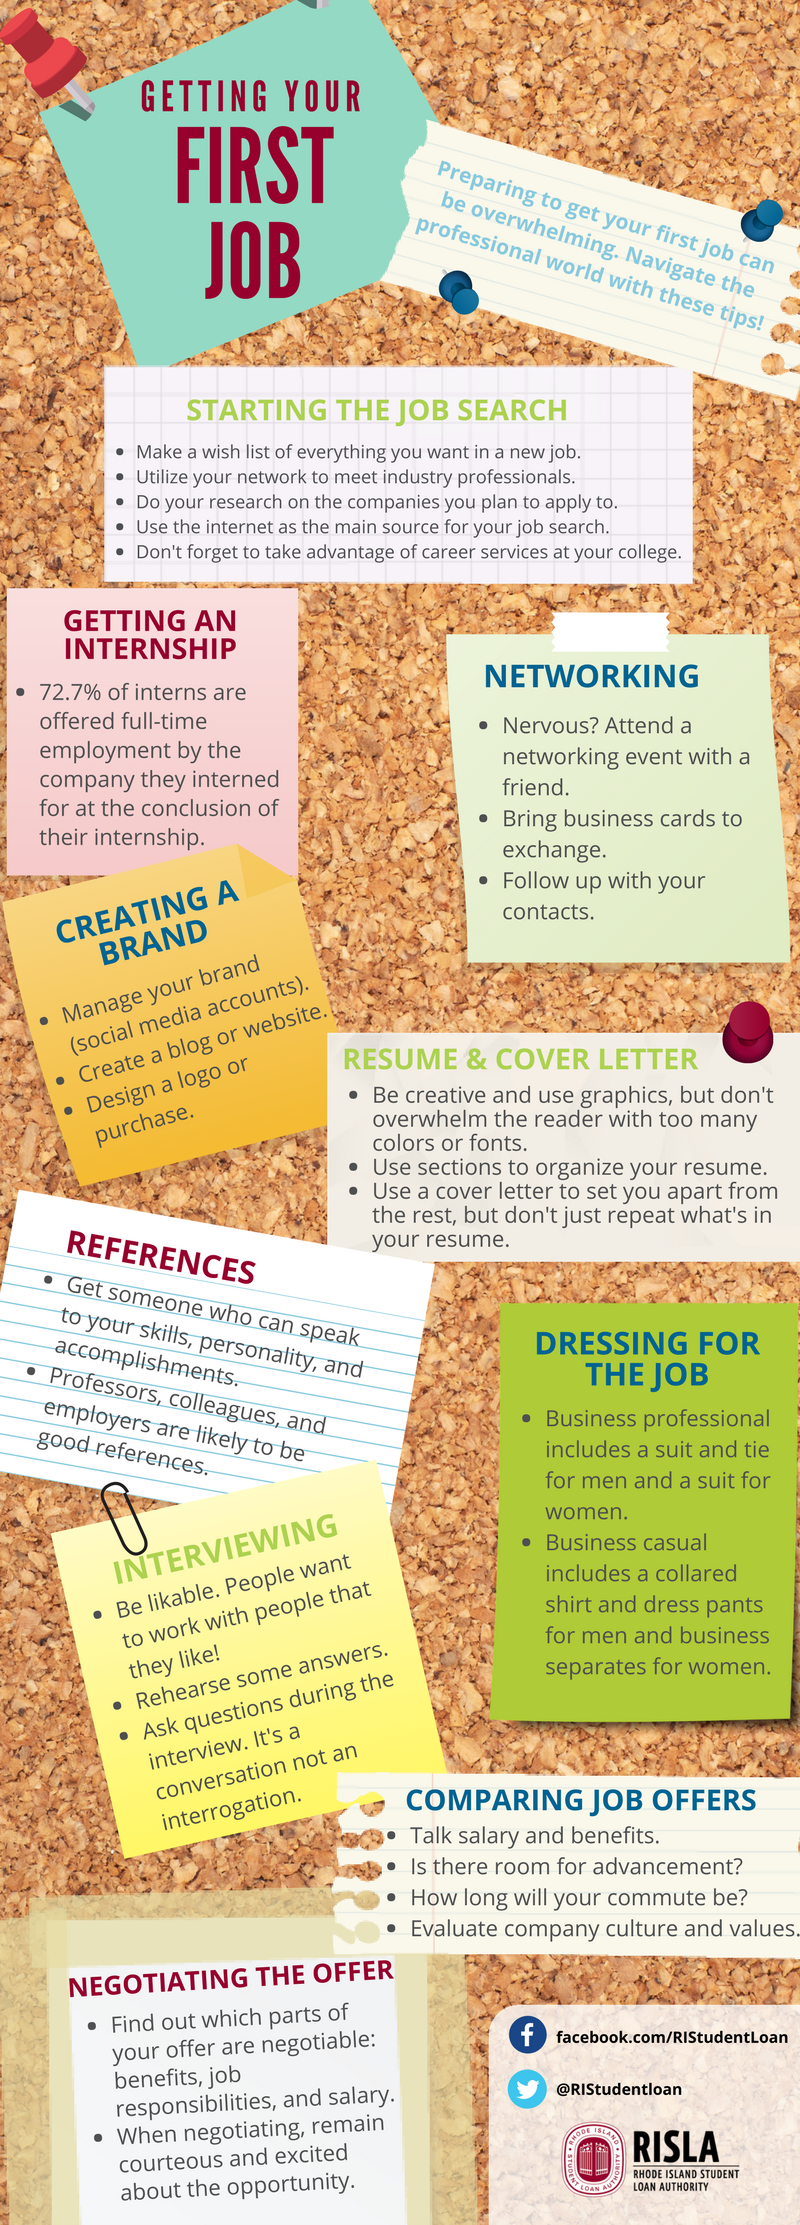 Career Planning: Getting Your First Job